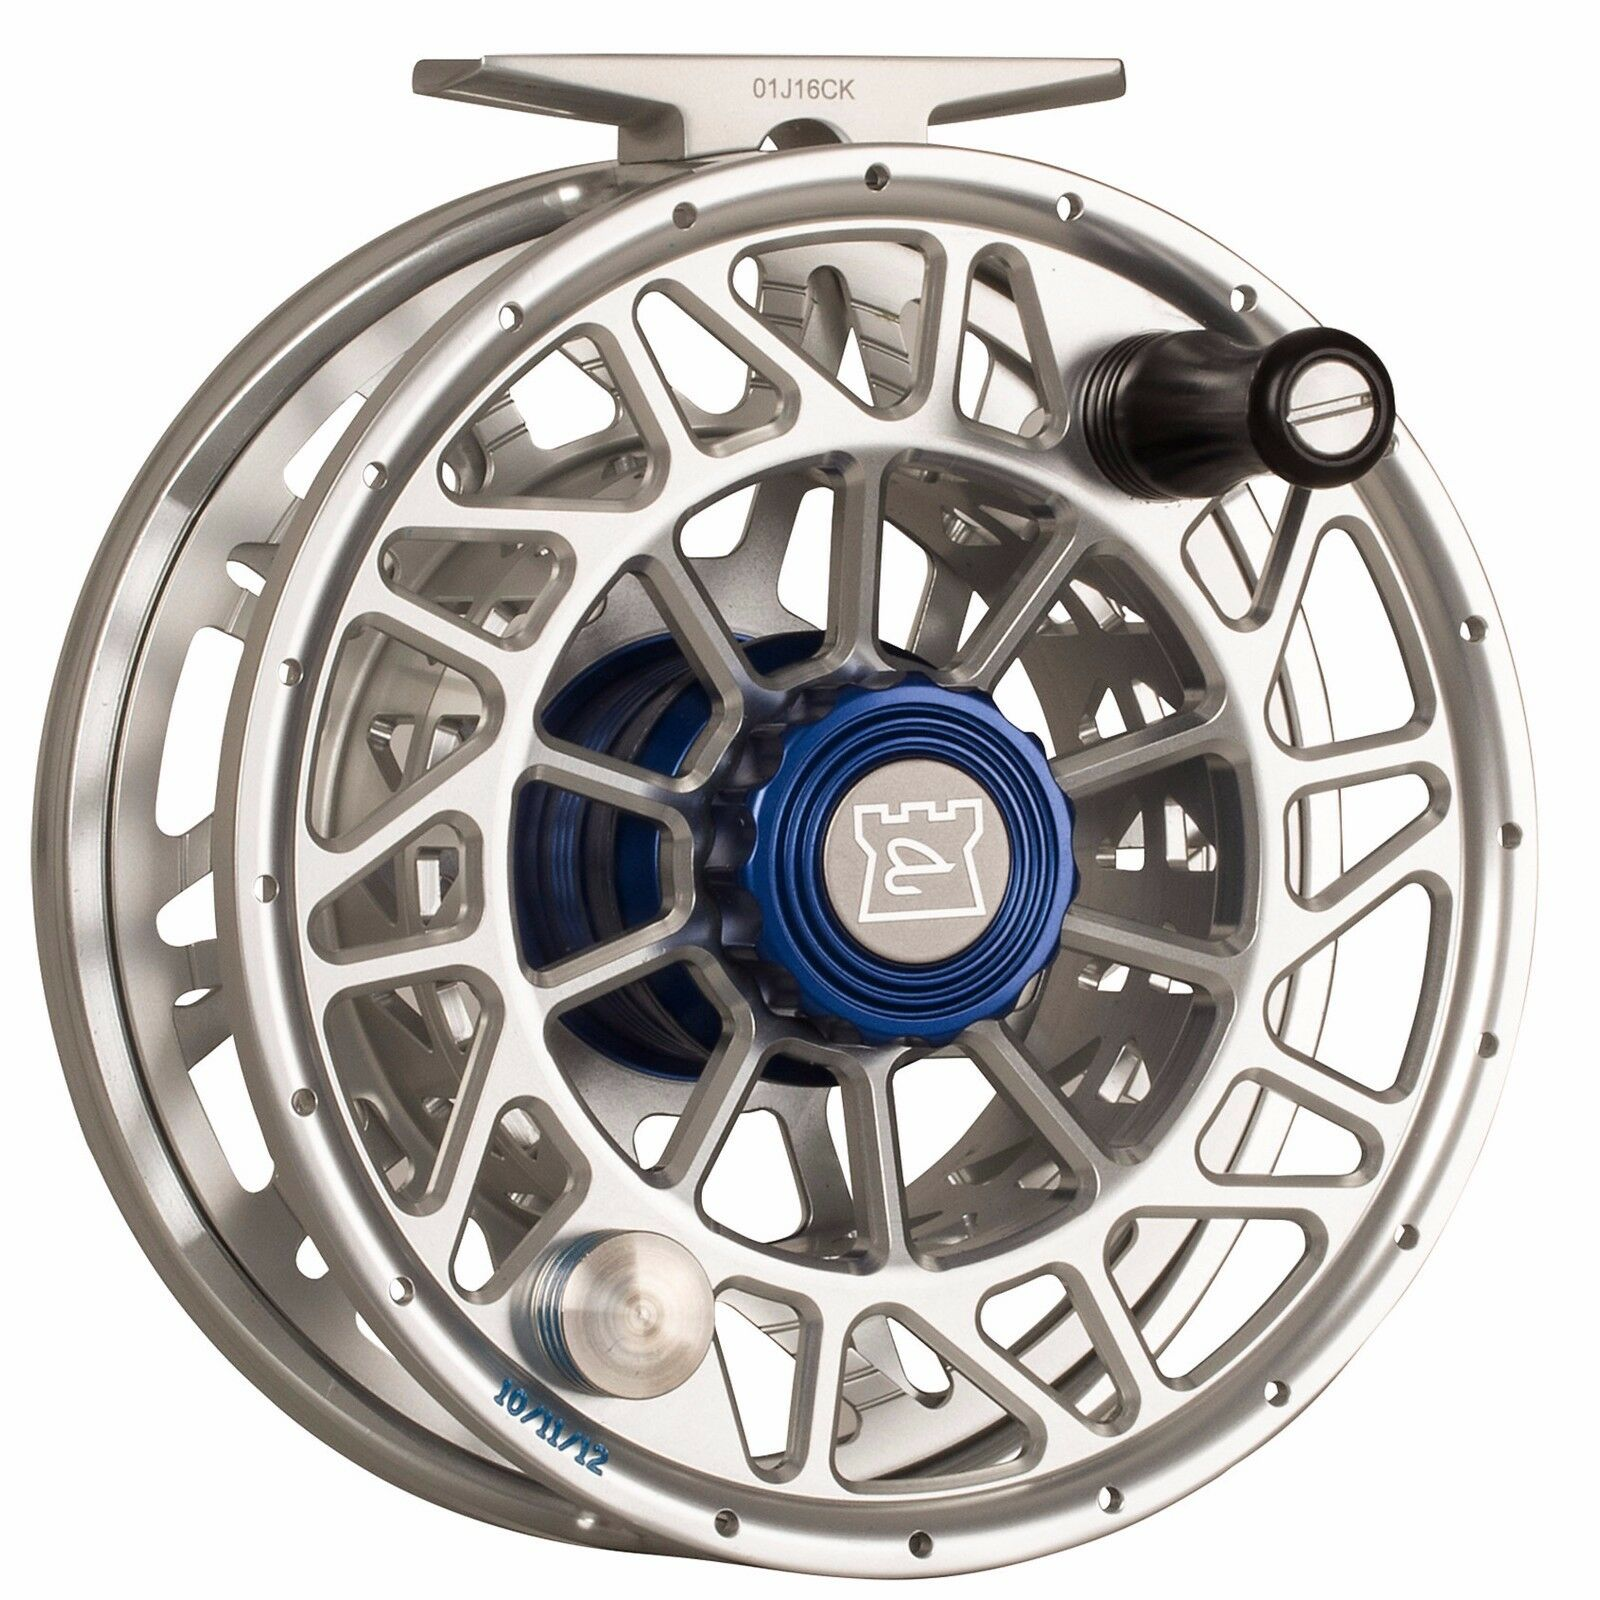 Hardy  Ultralite SDSL Trout and Salmon Fly Fishing Reels  quick answers